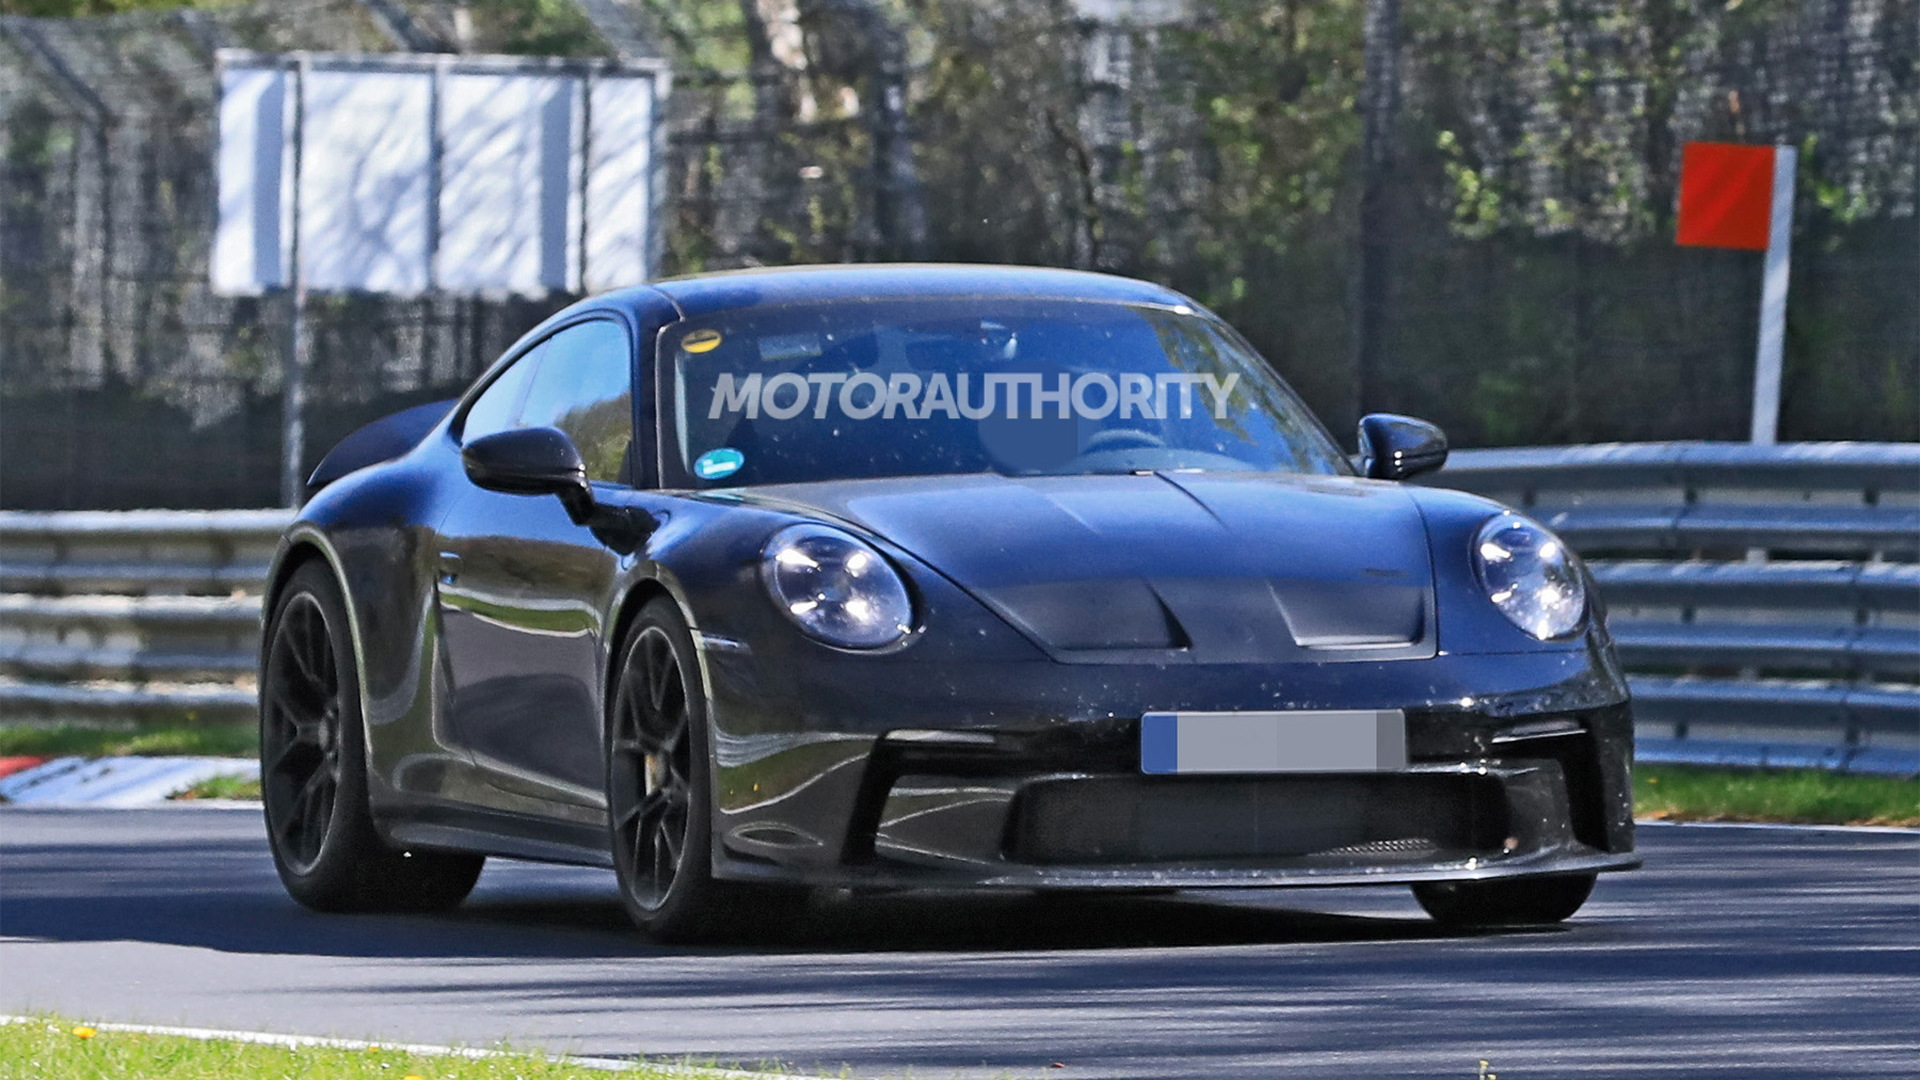 2022 Porsche 911 GT3 Touring spy shots - Photo credit: S. Baldauf/SB-Medien